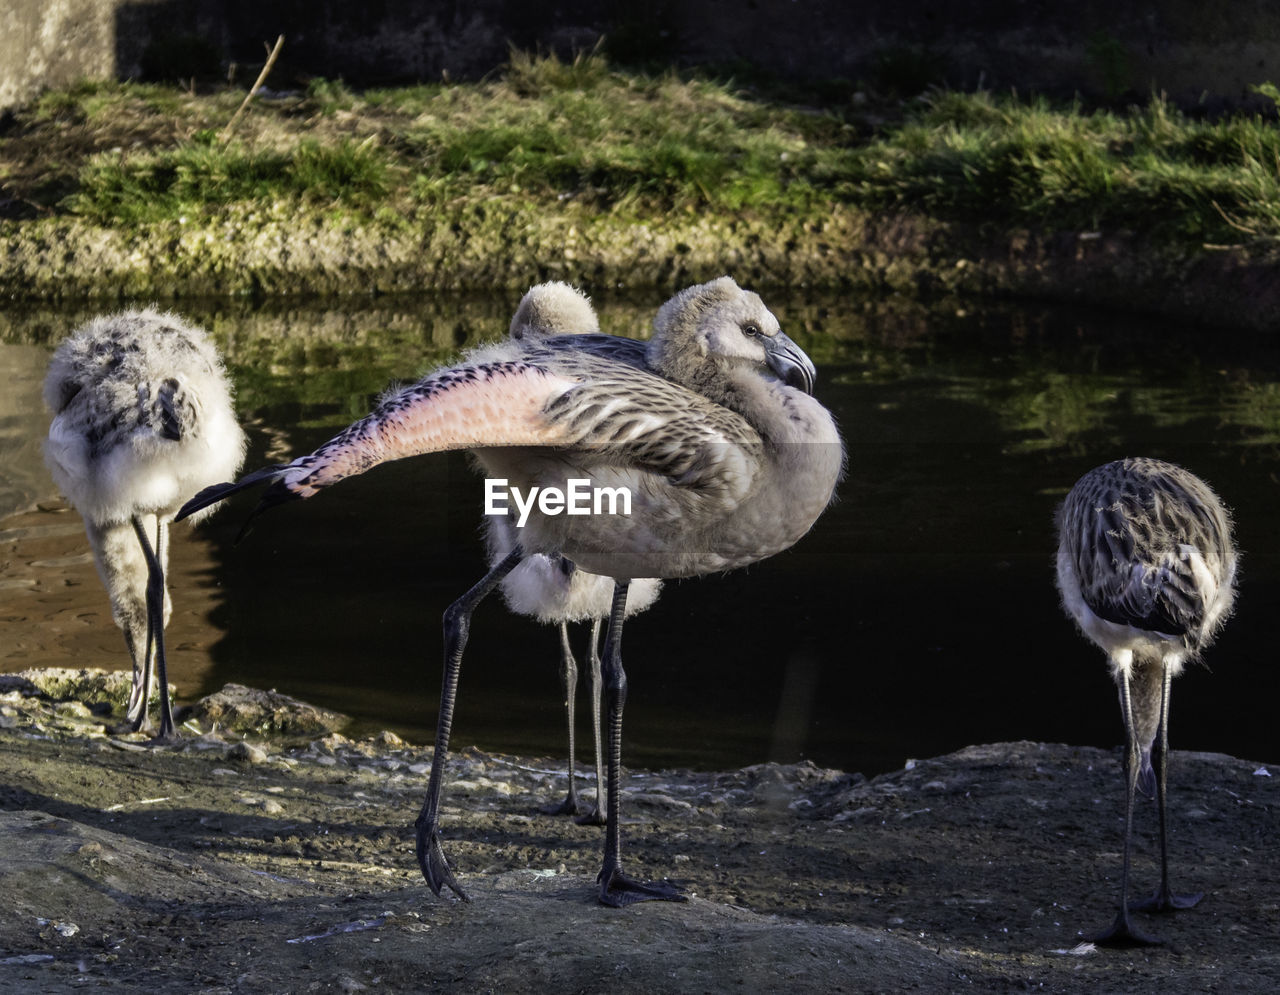 group of animals, animal, bird, animal themes, animals in the wild, animal wildlife, vertebrate, water, nature, no people, day, two animals, perching, land, outdoors, lake, focus on foreground, sunlight